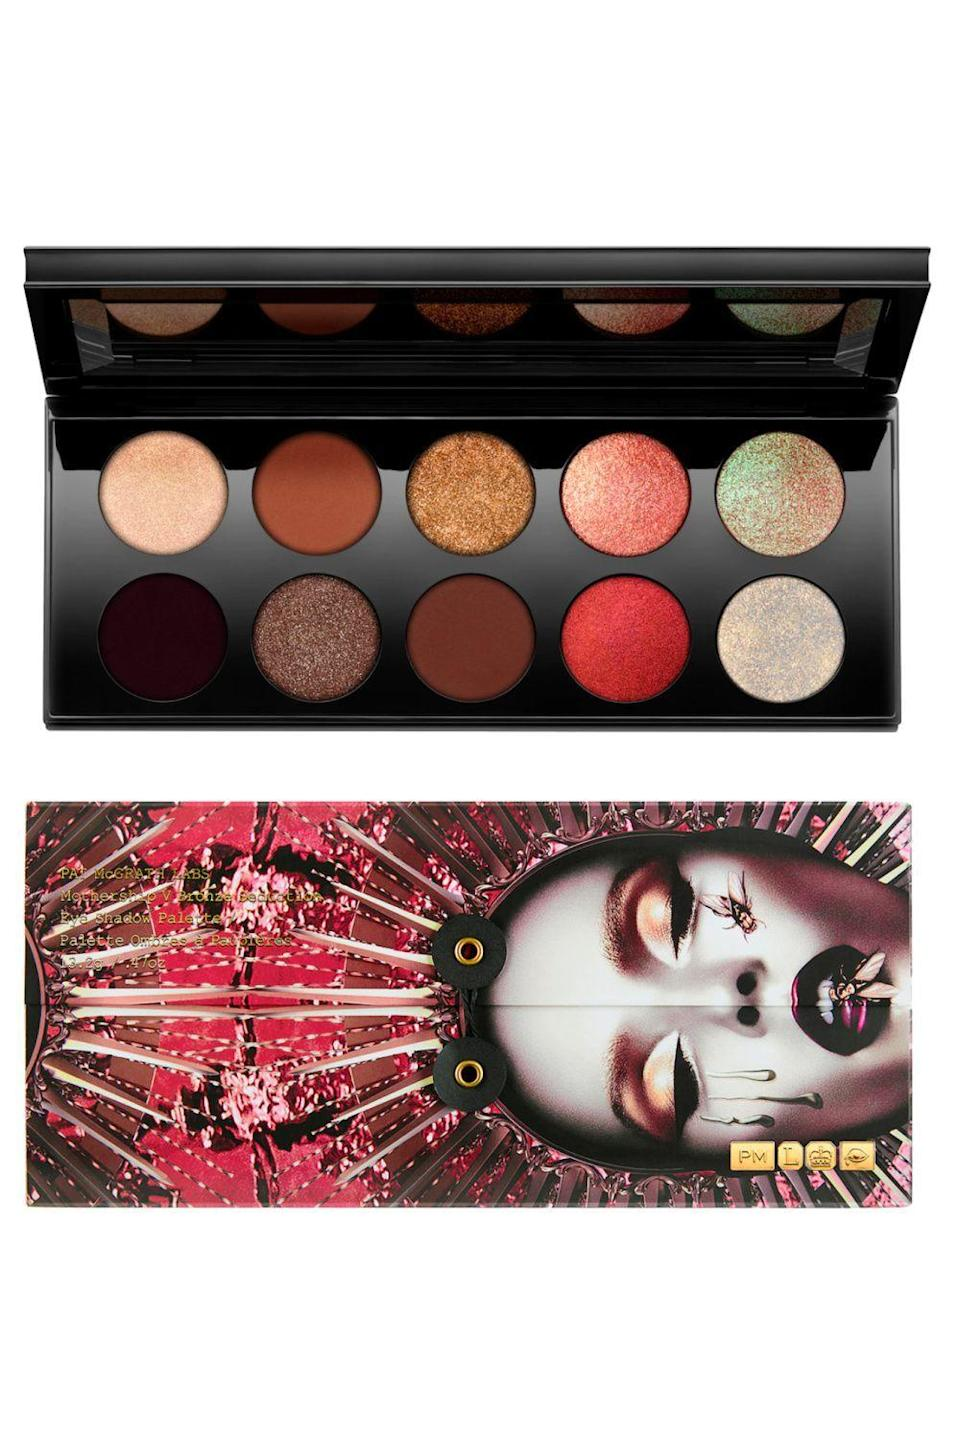 """<p><strong>PAT McGRATH LABS</strong></p><p>sephora.com</p><p><strong>$125.00</strong></p><p><a href=""""https://go.redirectingat.com?id=74968X1596630&url=https%3A%2F%2Fwww.sephora.com%2Fproduct%2Fmothership-v-eyeshadow-palette-P86825294&sref=https%3A%2F%2Fwww.cosmopolitan.com%2Fstyle-beauty%2Fbeauty%2Fg36596599%2Fbest-eyeshadow-palettes%2F"""" rel=""""nofollow noopener"""" target=""""_blank"""" data-ylk=""""slk:Shop Now"""" class=""""link rapid-noclick-resp"""">Shop Now</a></p><p>I love <a href=""""https://www.cosmopolitan.com/style-beauty/beauty/g15773998/best-drugstore-makeup-brands-products/"""" rel=""""nofollow noopener"""" target=""""_blank"""" data-ylk=""""slk:drugstore makeup"""" class=""""link rapid-noclick-resp"""">drugstore makeup</a>, so rarely do I say an expensive product is worth the money, but in this case, you'll want to start saving up right TF now because these eyeshadows are <em>rich</em> (and I mean that in all of the ways). Opening one of these luxe palettes is a surreal experience in and of itself (I still keep mine in the protective sleeves, not gonna lie), but getting your hands on the one-of-a-kind <strong>color-shifting shades and cream-infused powders</strong> is worth the price.</p>"""